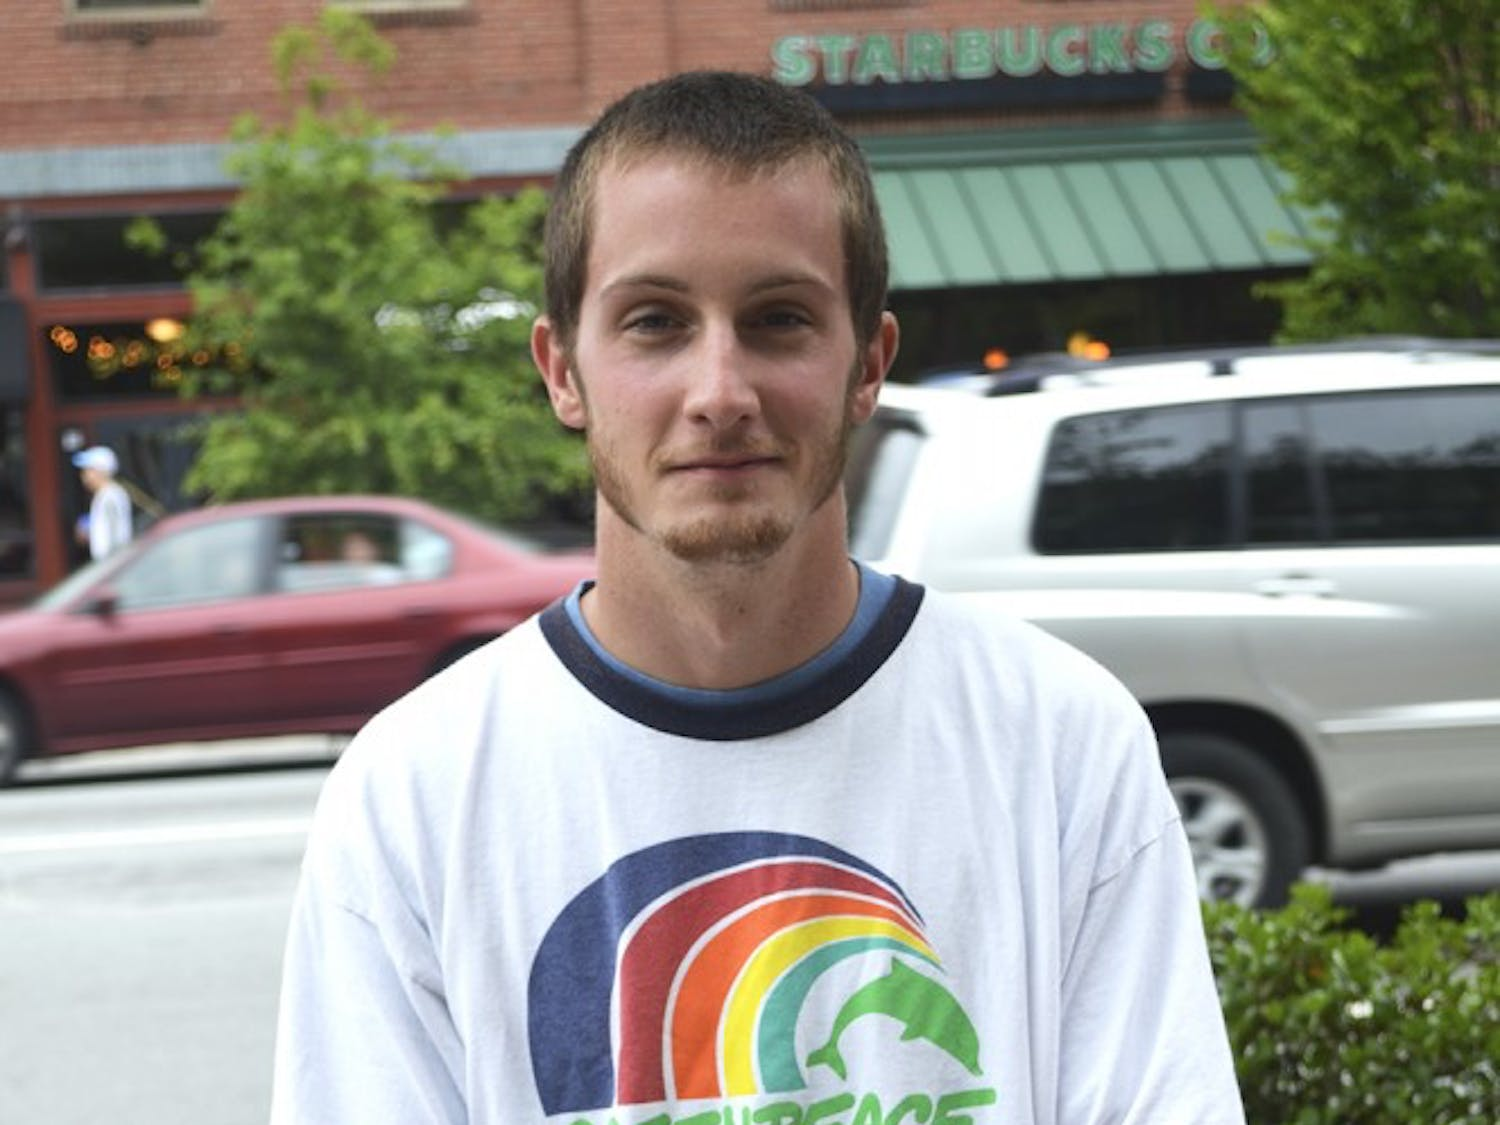 Macon Craig is a new employee at Greenpeace.  Craig got involved by respond to an advertisement on Craigslist.